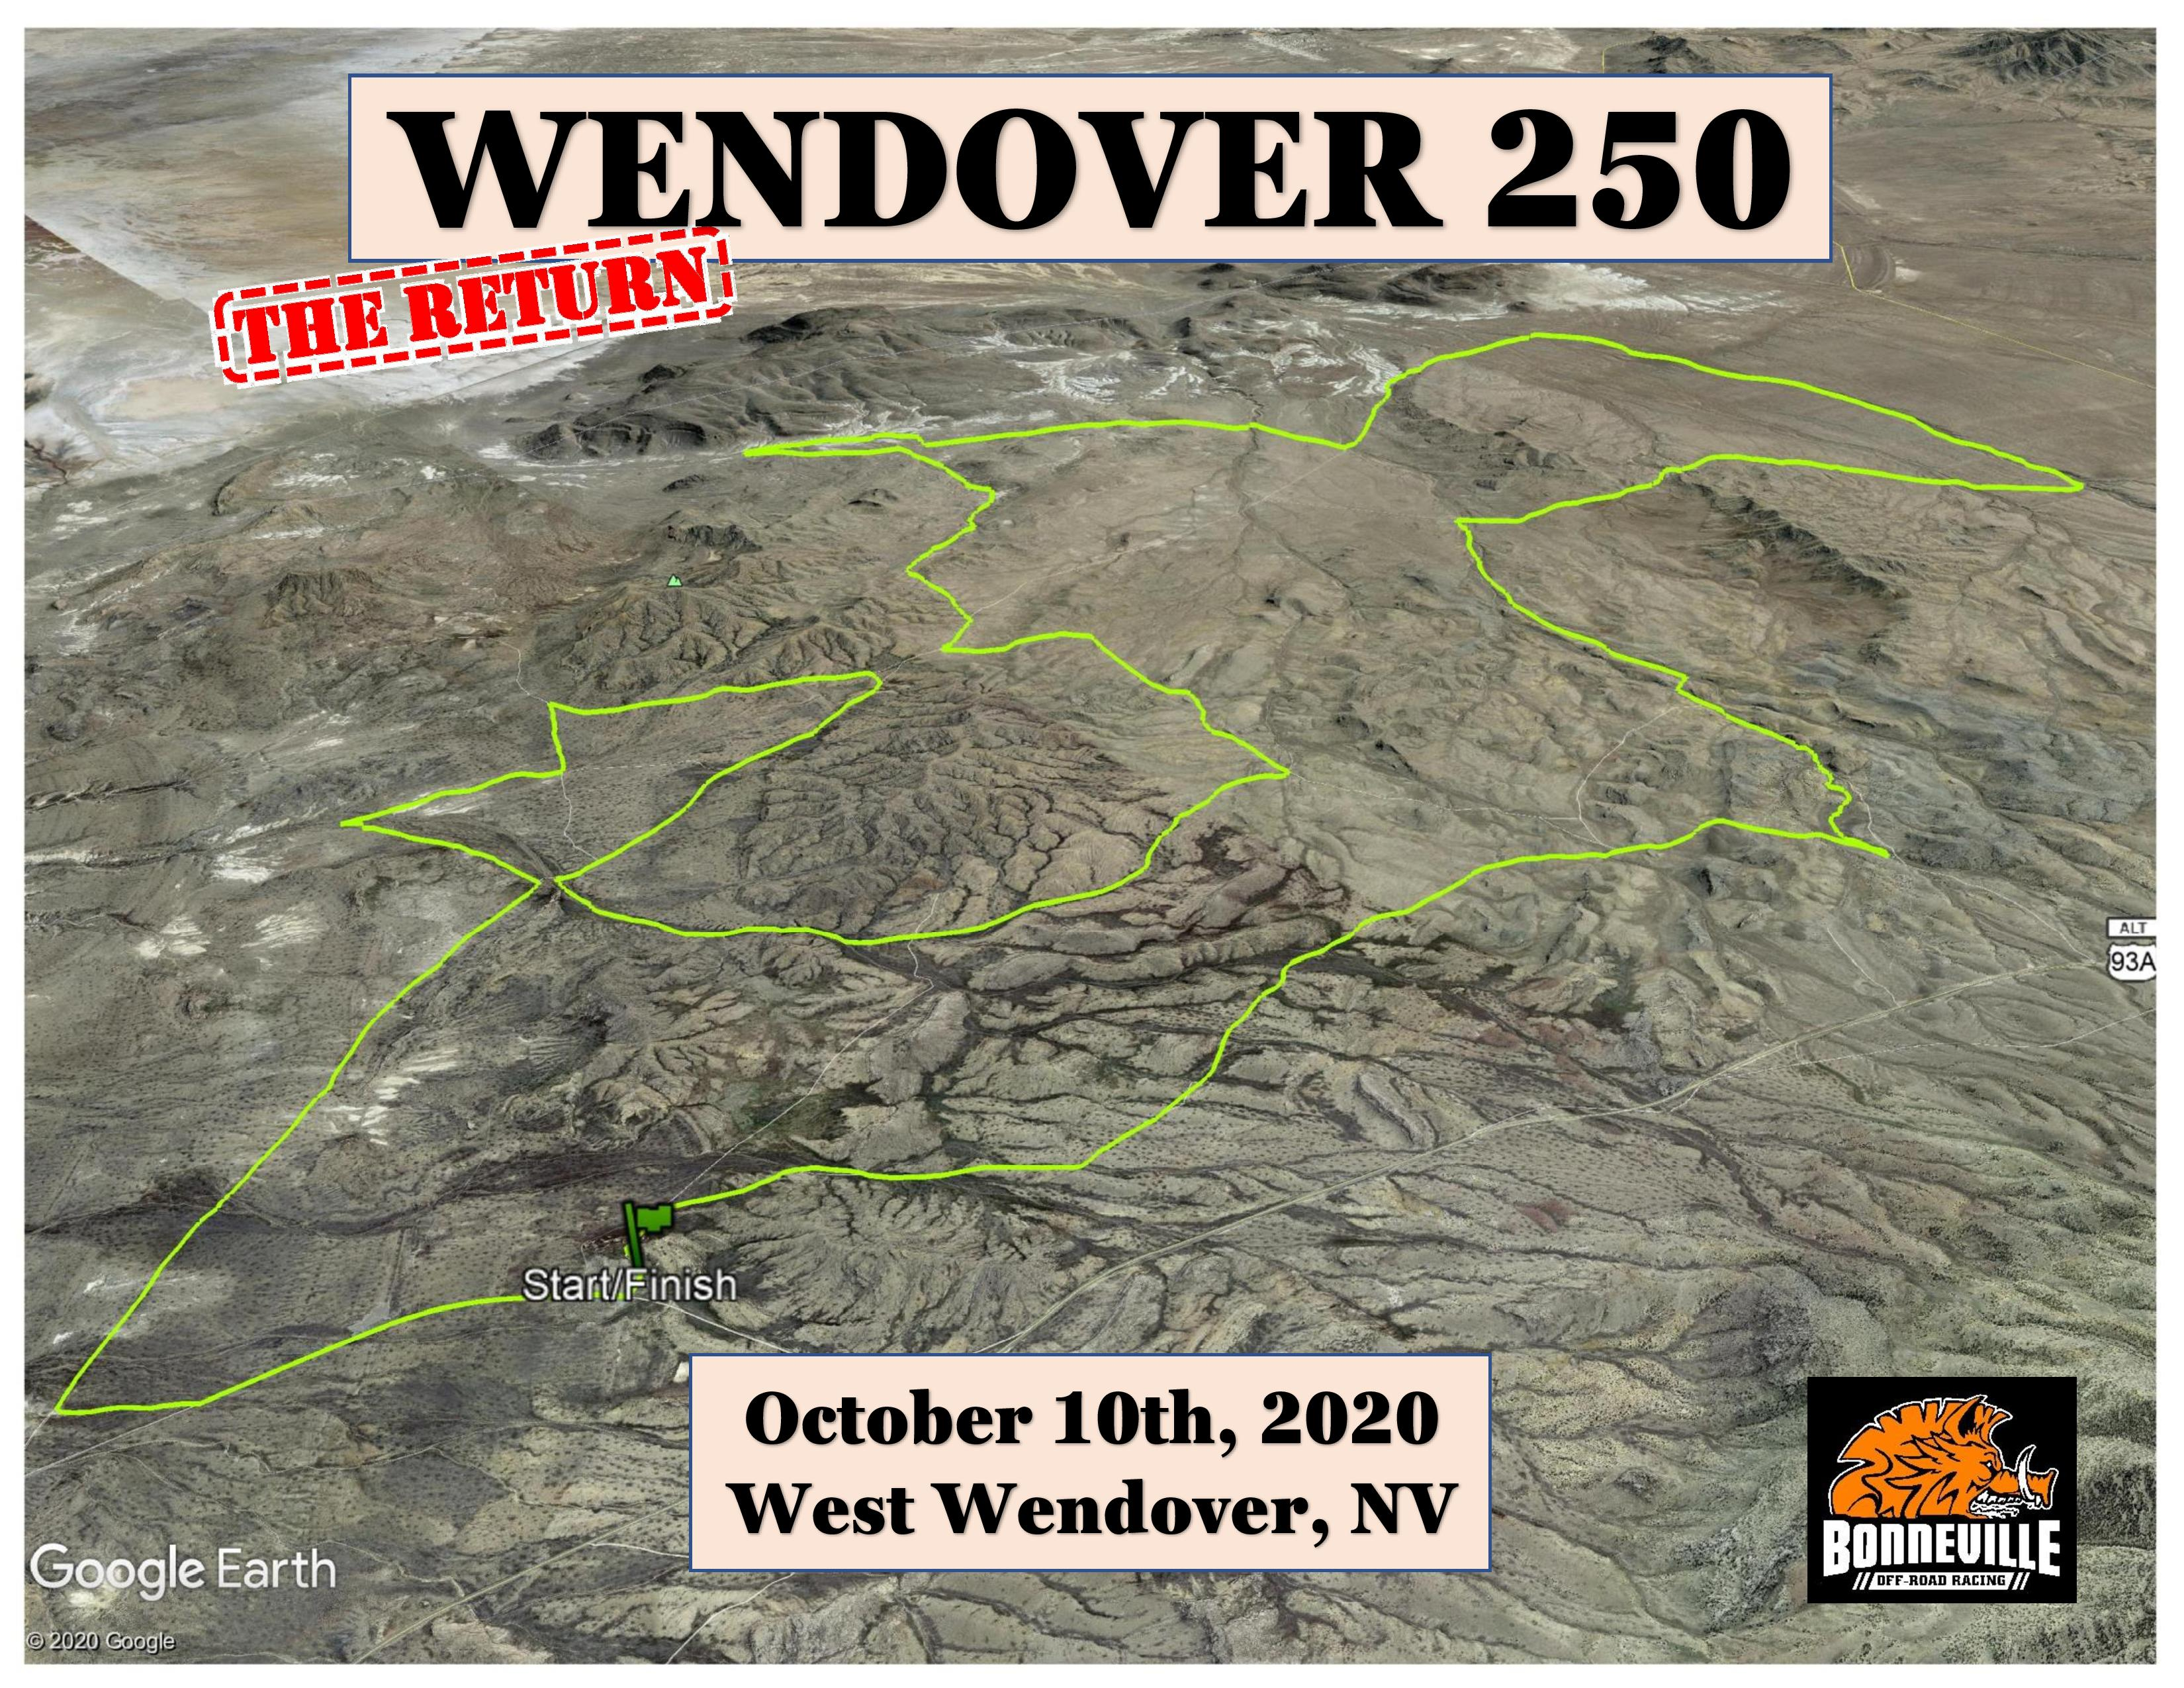 Wendover 250 2020 preview map.jpg